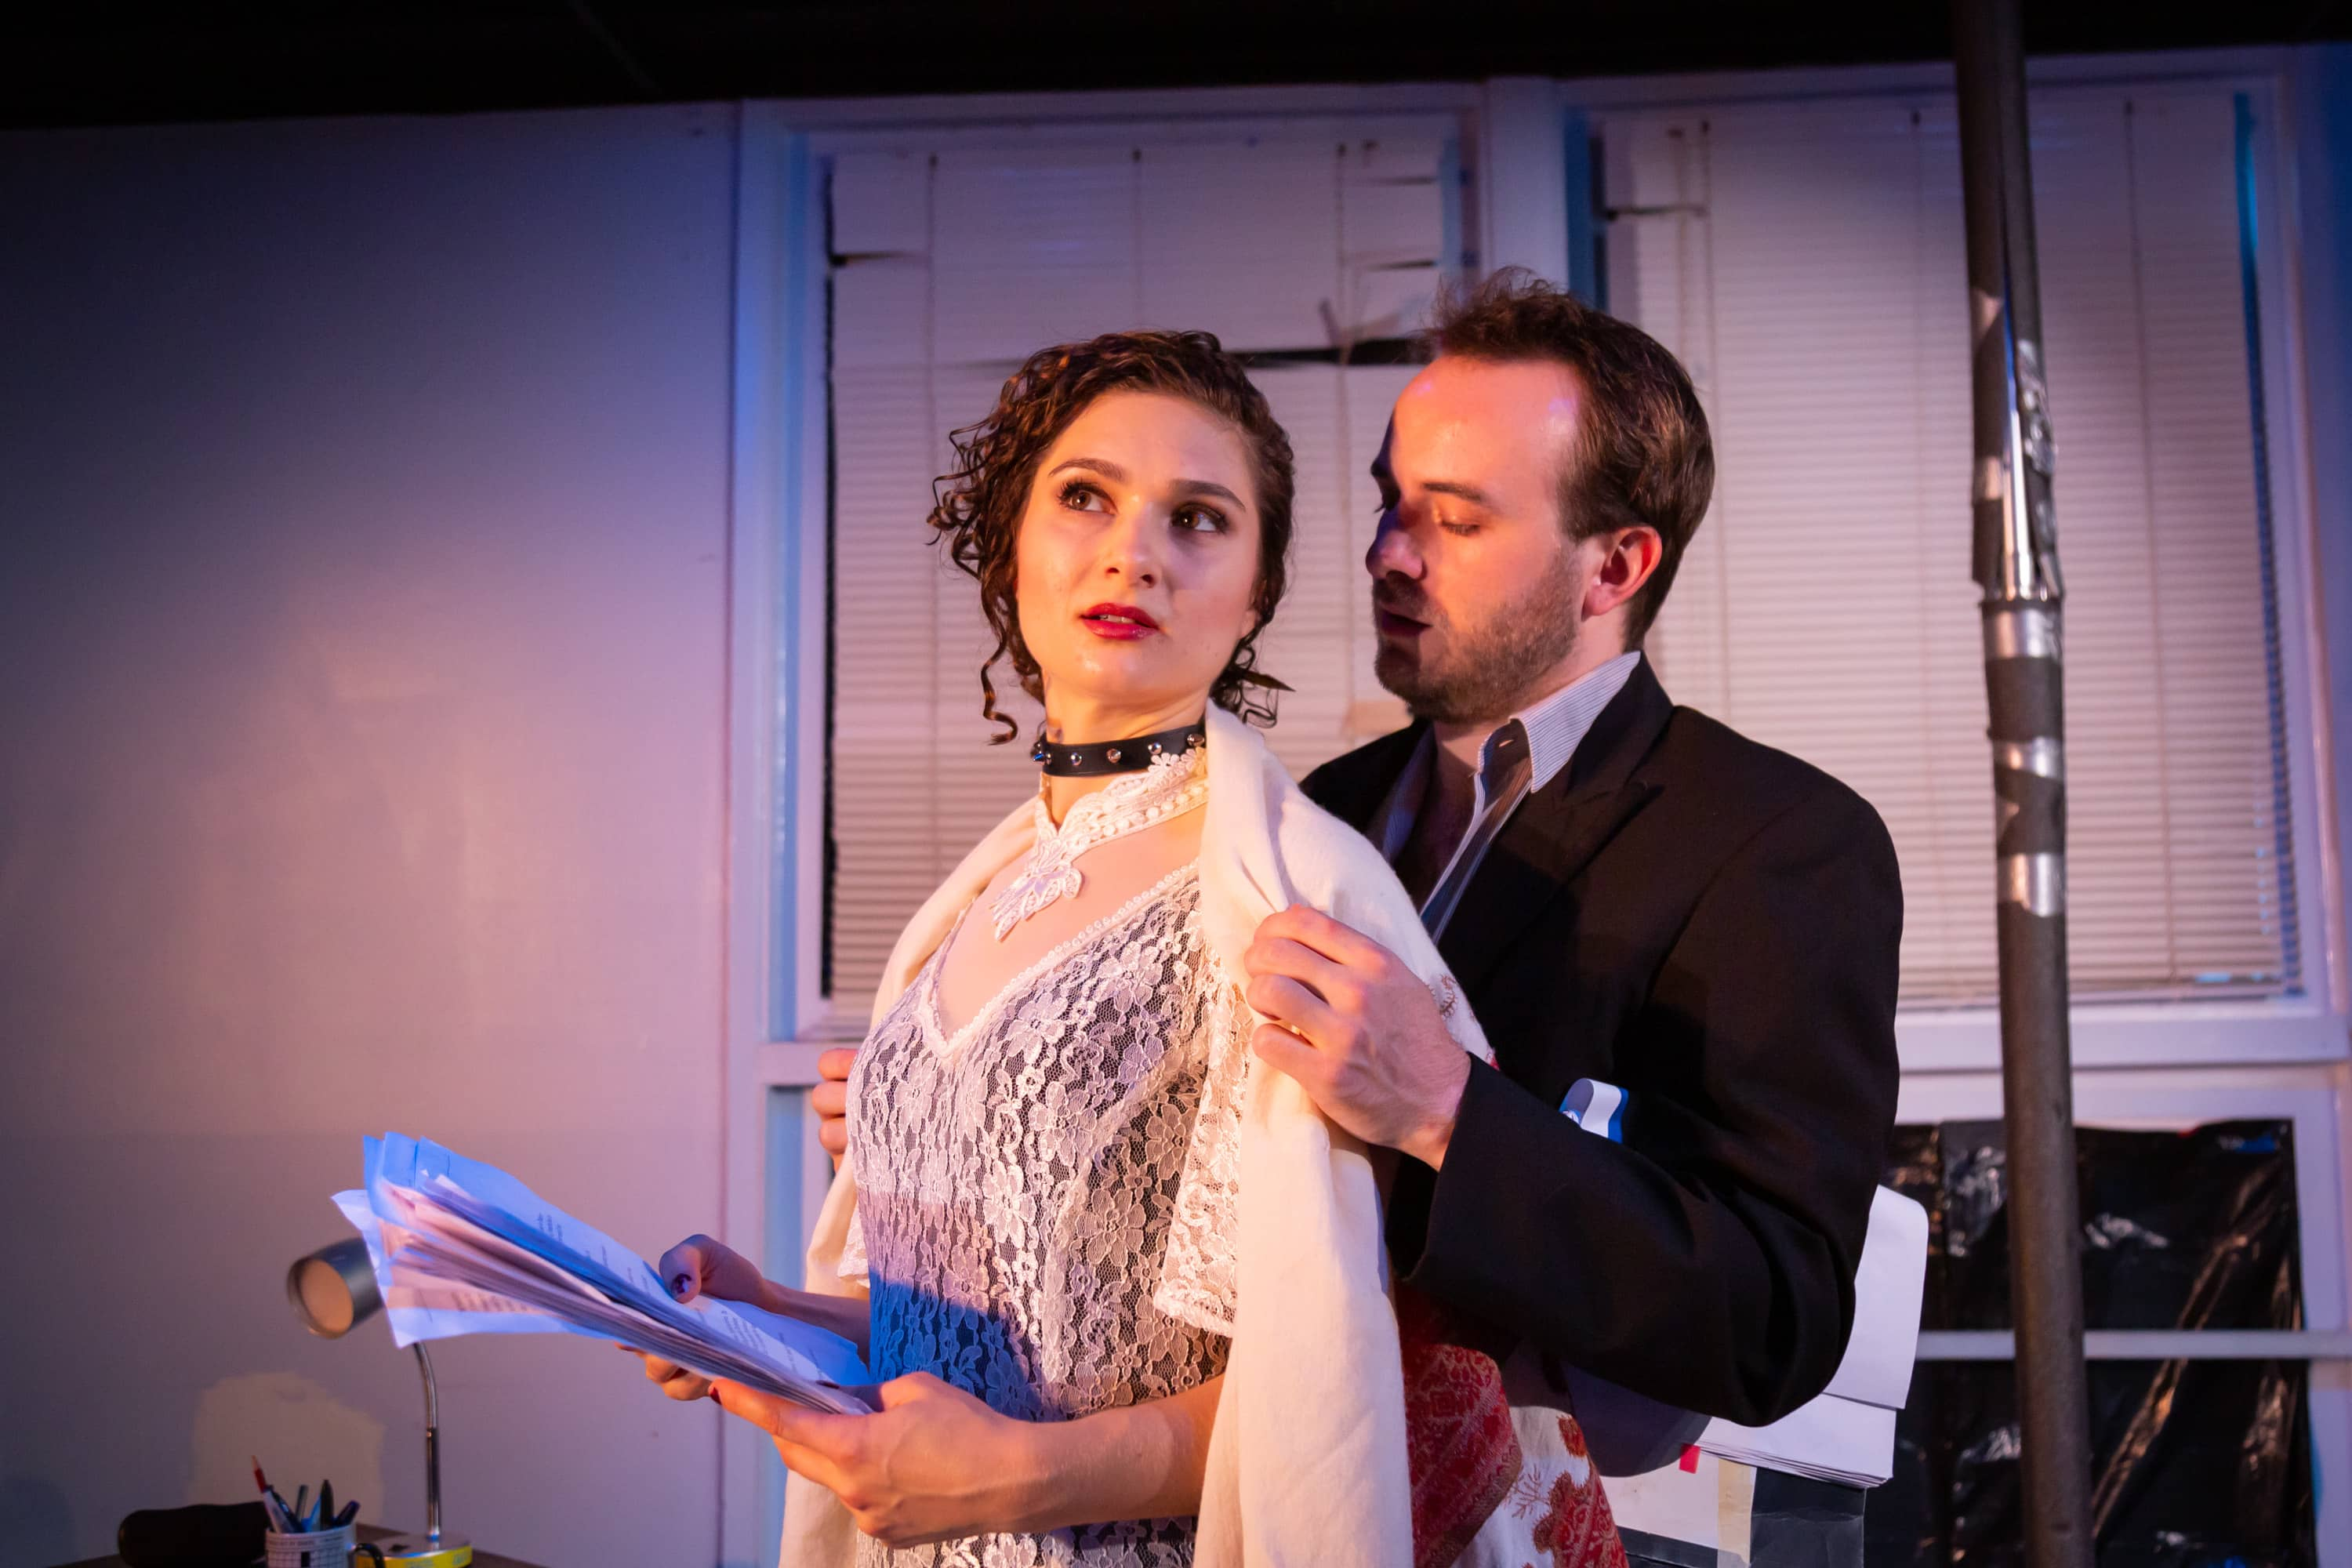 Anna DiGiovanni as Vanda and Scott Ward Abernethy as Thomas in Venus in Fur, now playing at 4615 Theatre Company. Photo by Ryan Maxwell Photography.